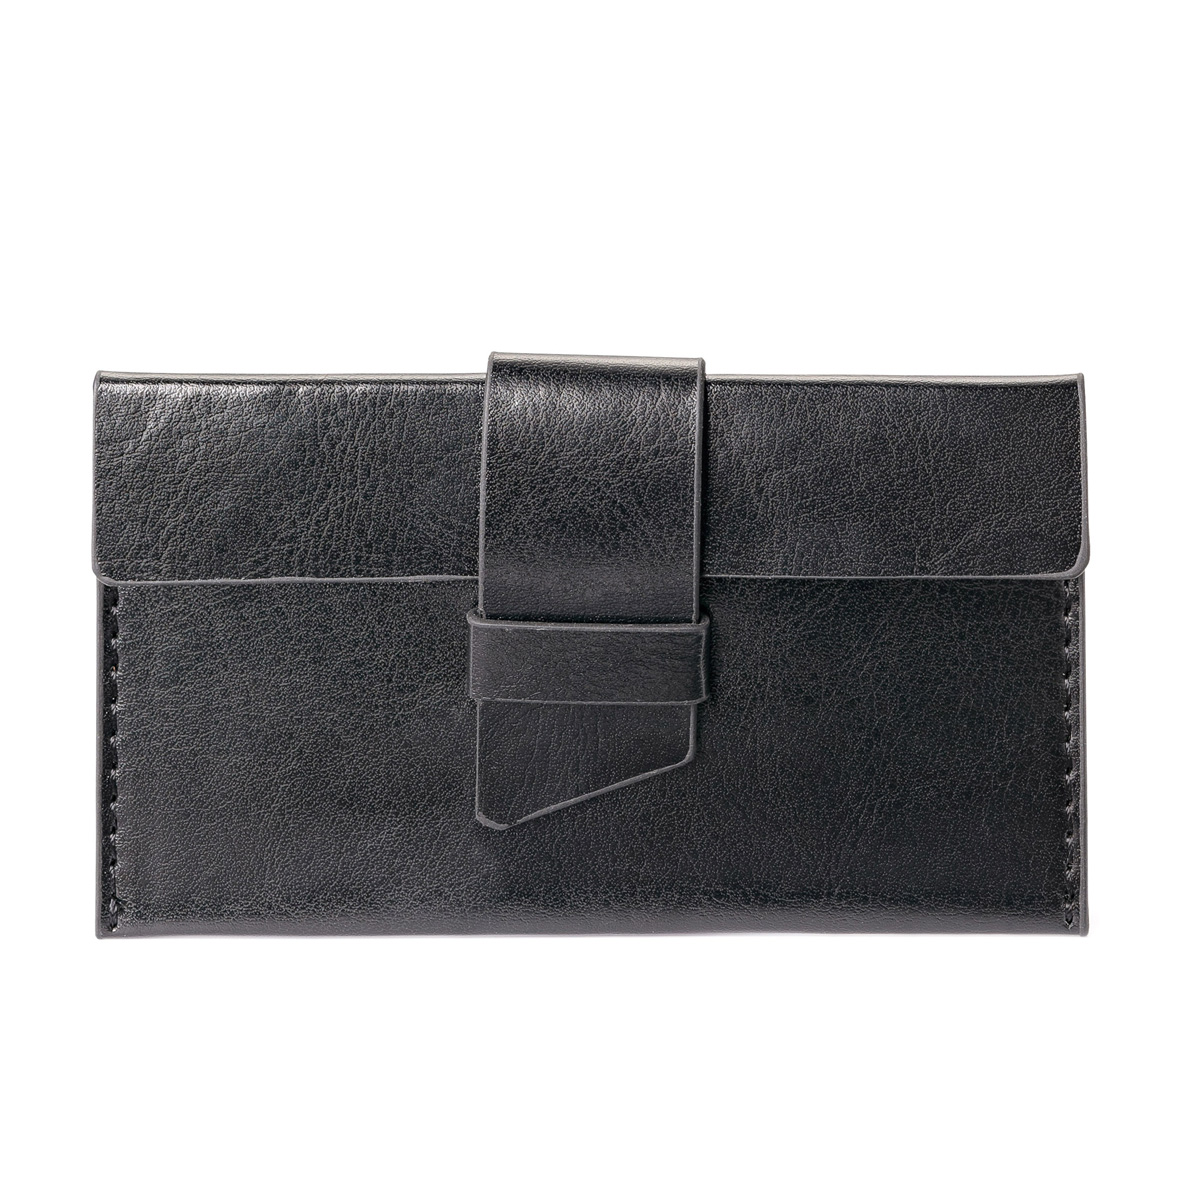 REALTOR® Giovanni Business Card Case (RTS4658)